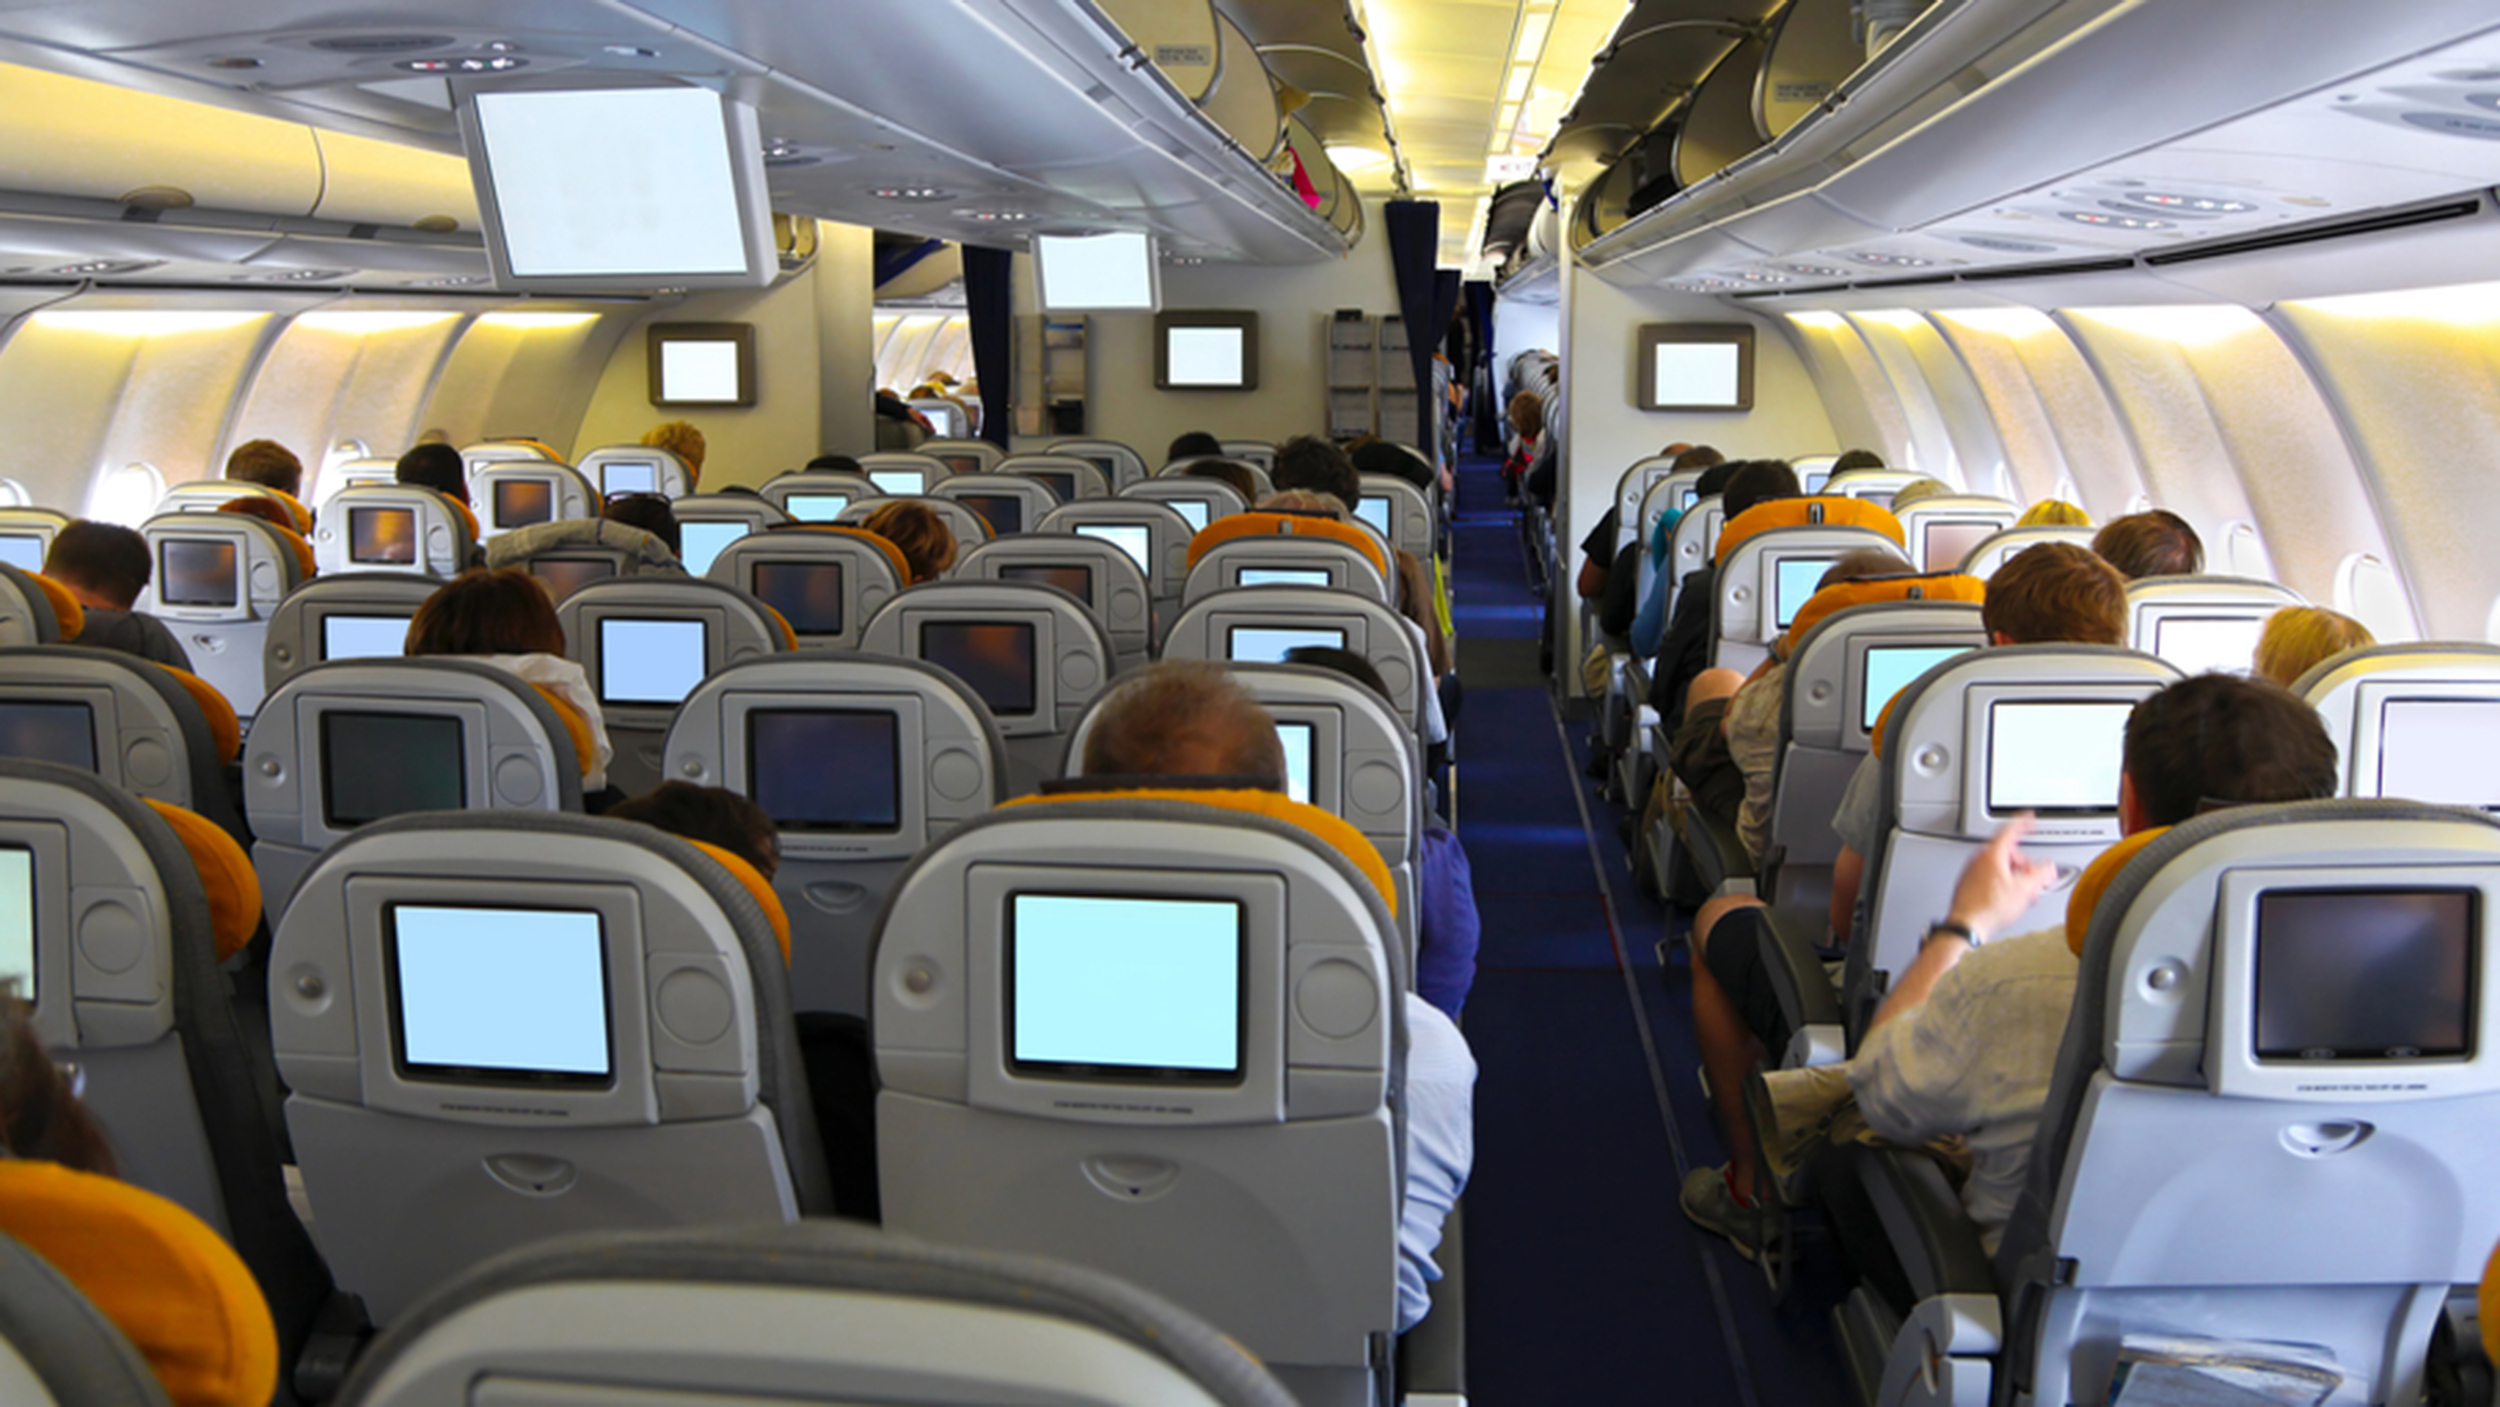 Some airlines are ditching in-flight entertainment systems for